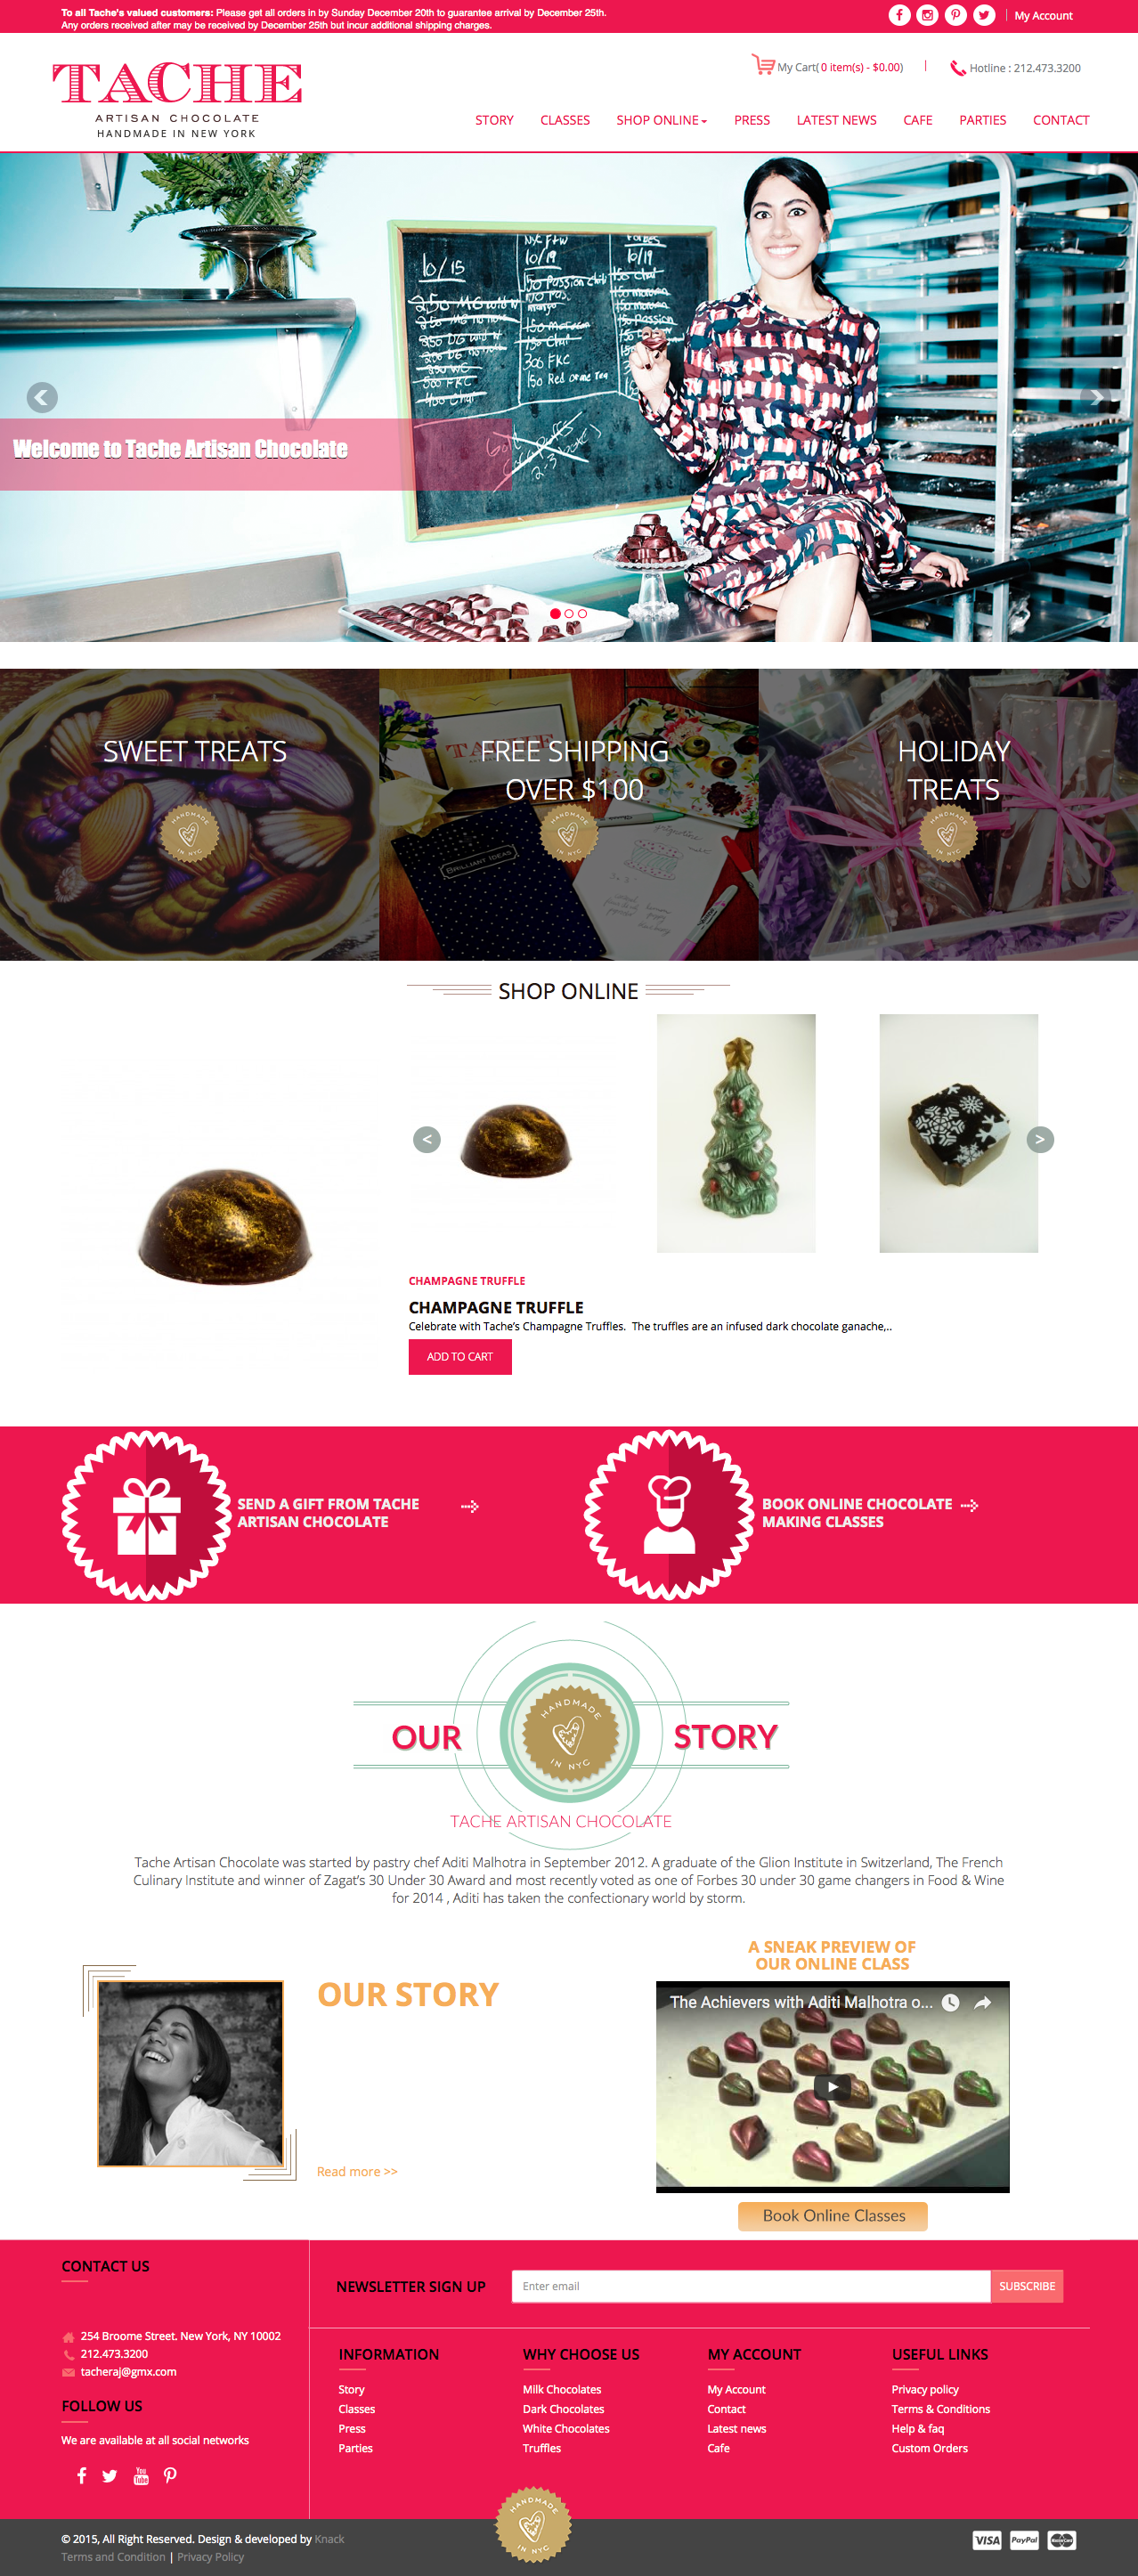 Tache Artisan Chocolate- Home Page